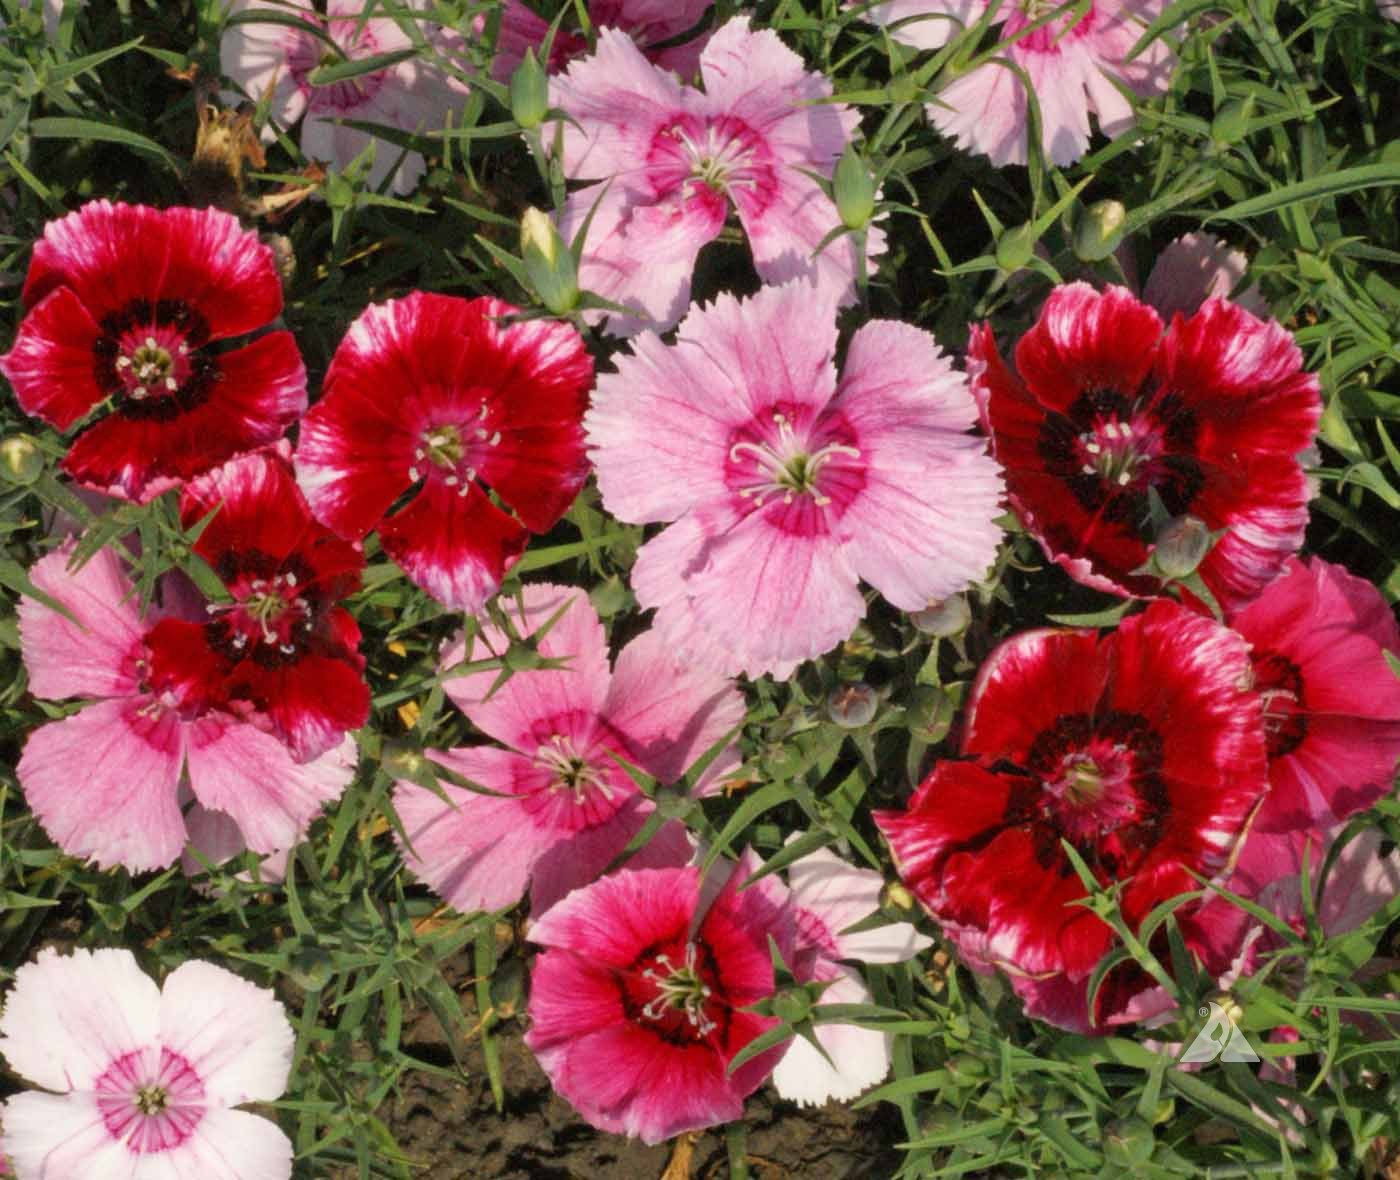 Dianthus Baby Doll Dianthus Chinensis Applewood Seed Company